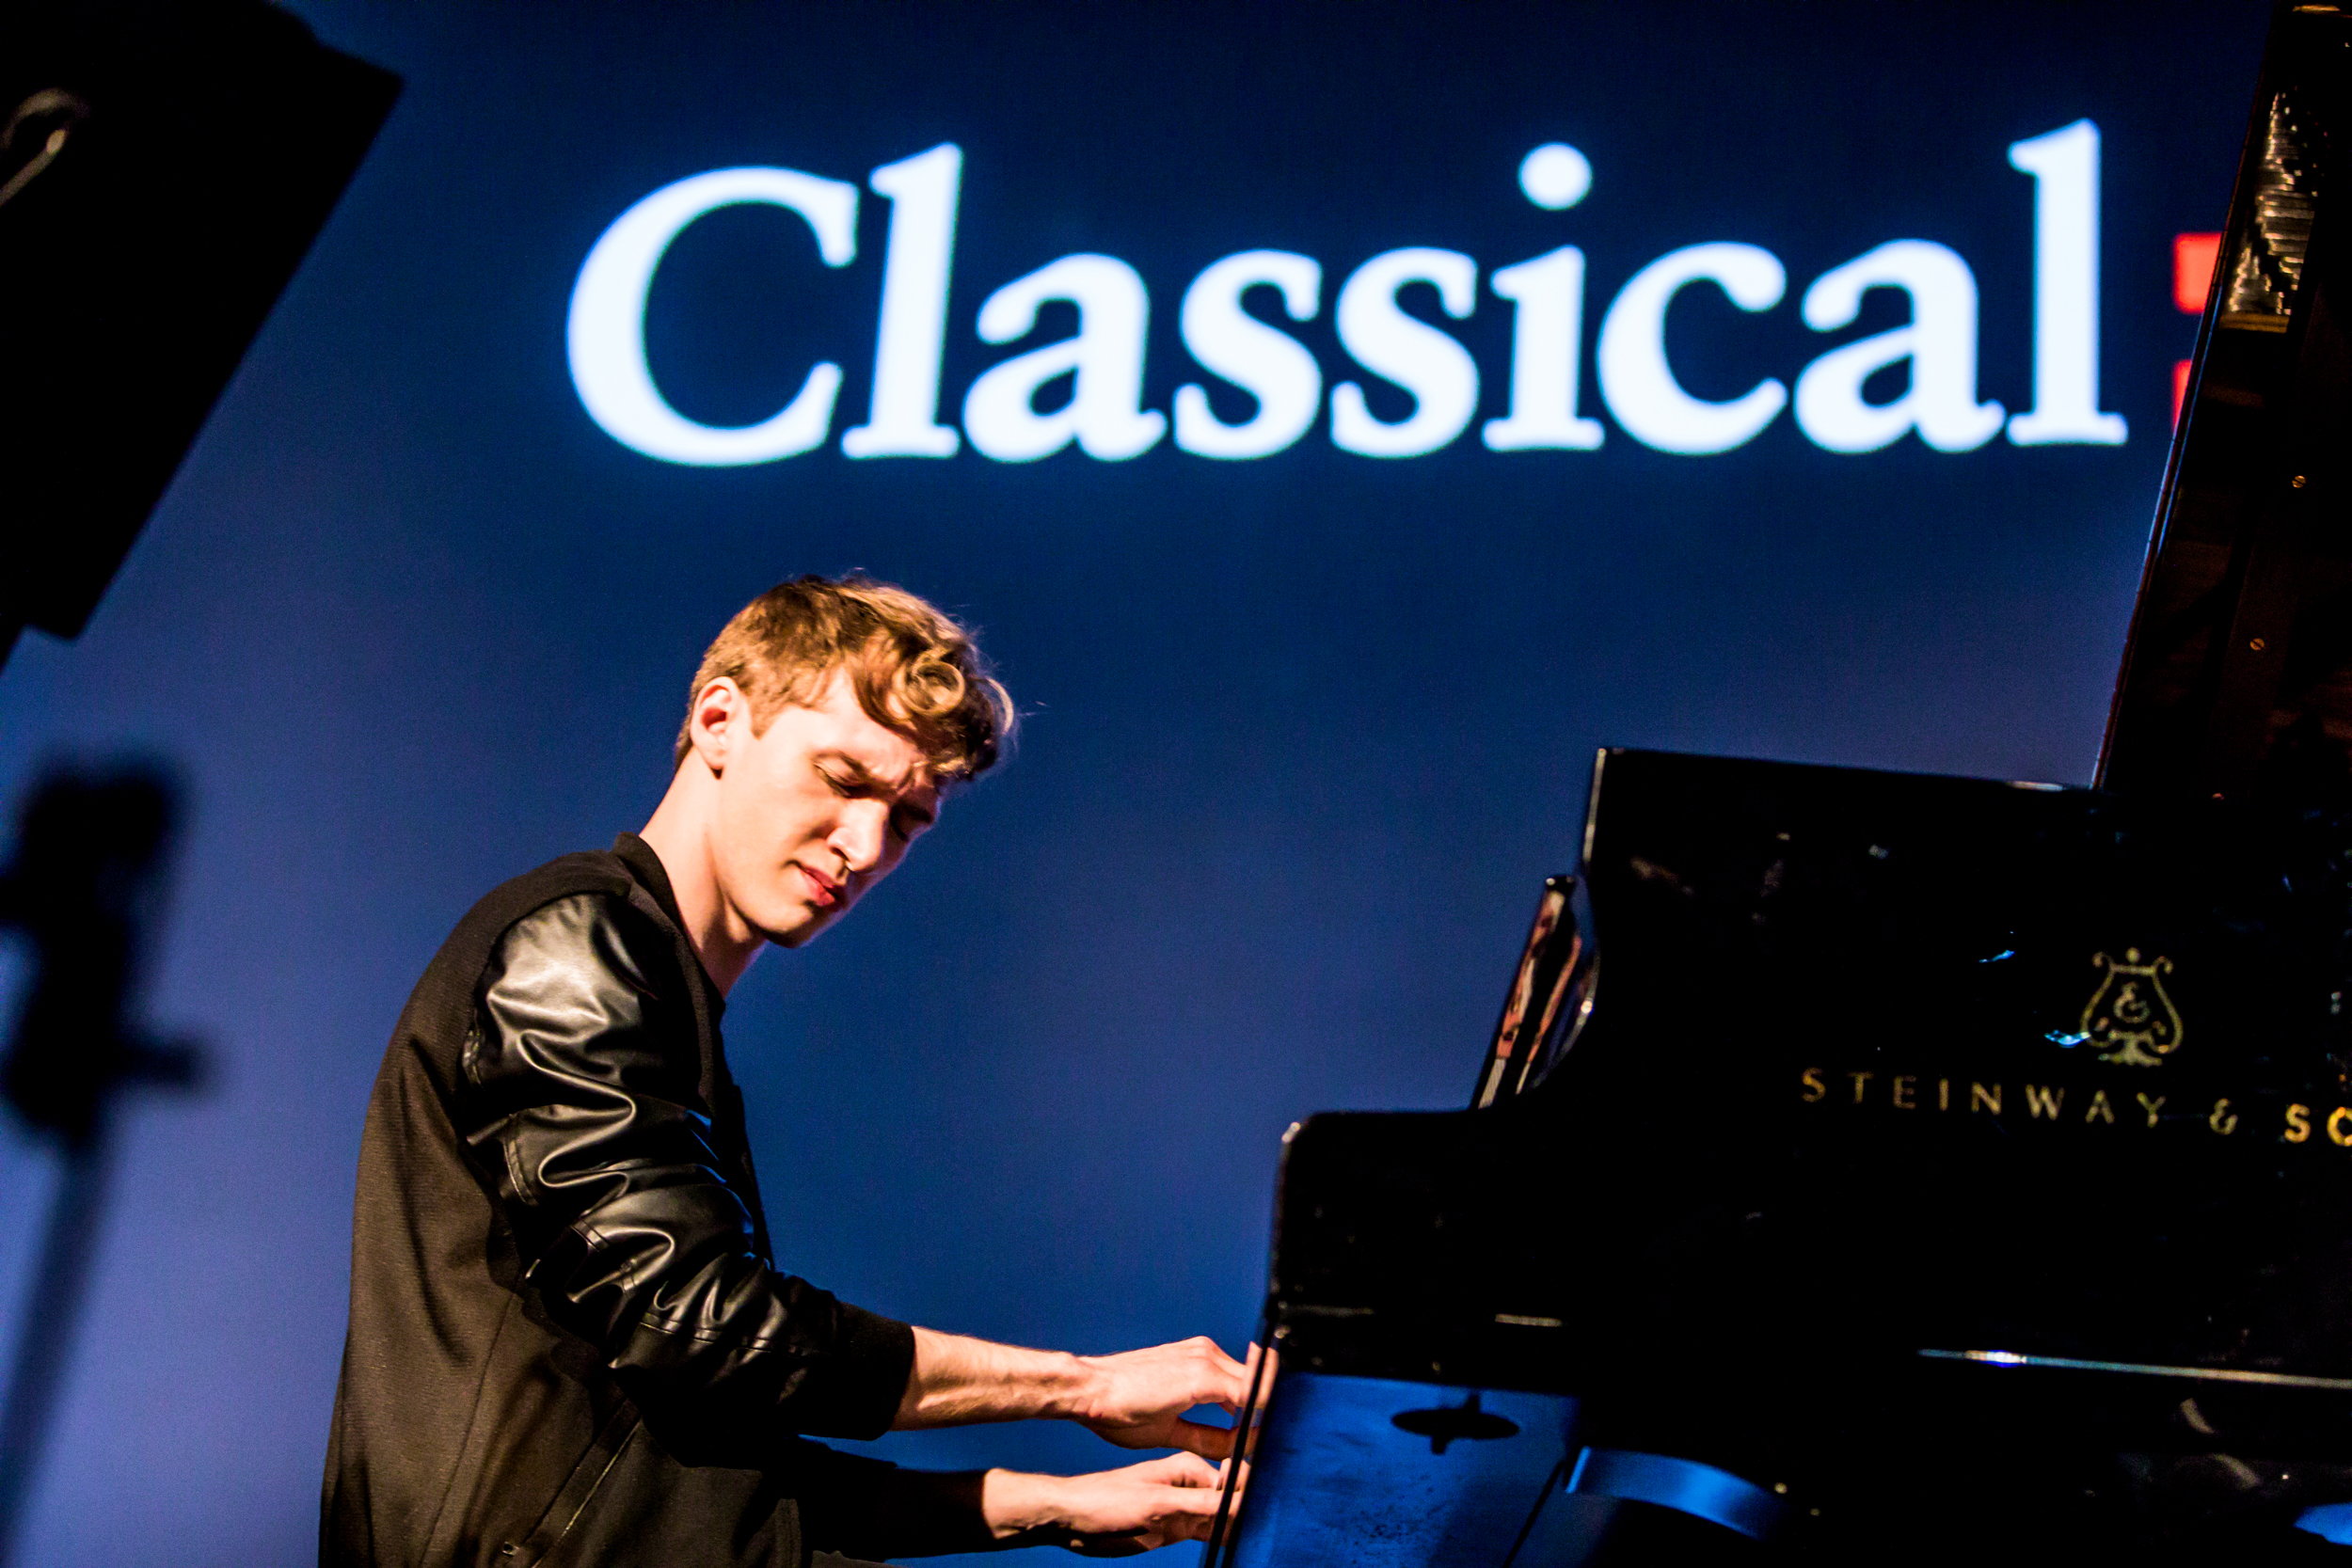 Kirill Richter at Classical:NEXT 2018 by Eric Van Nieuwland